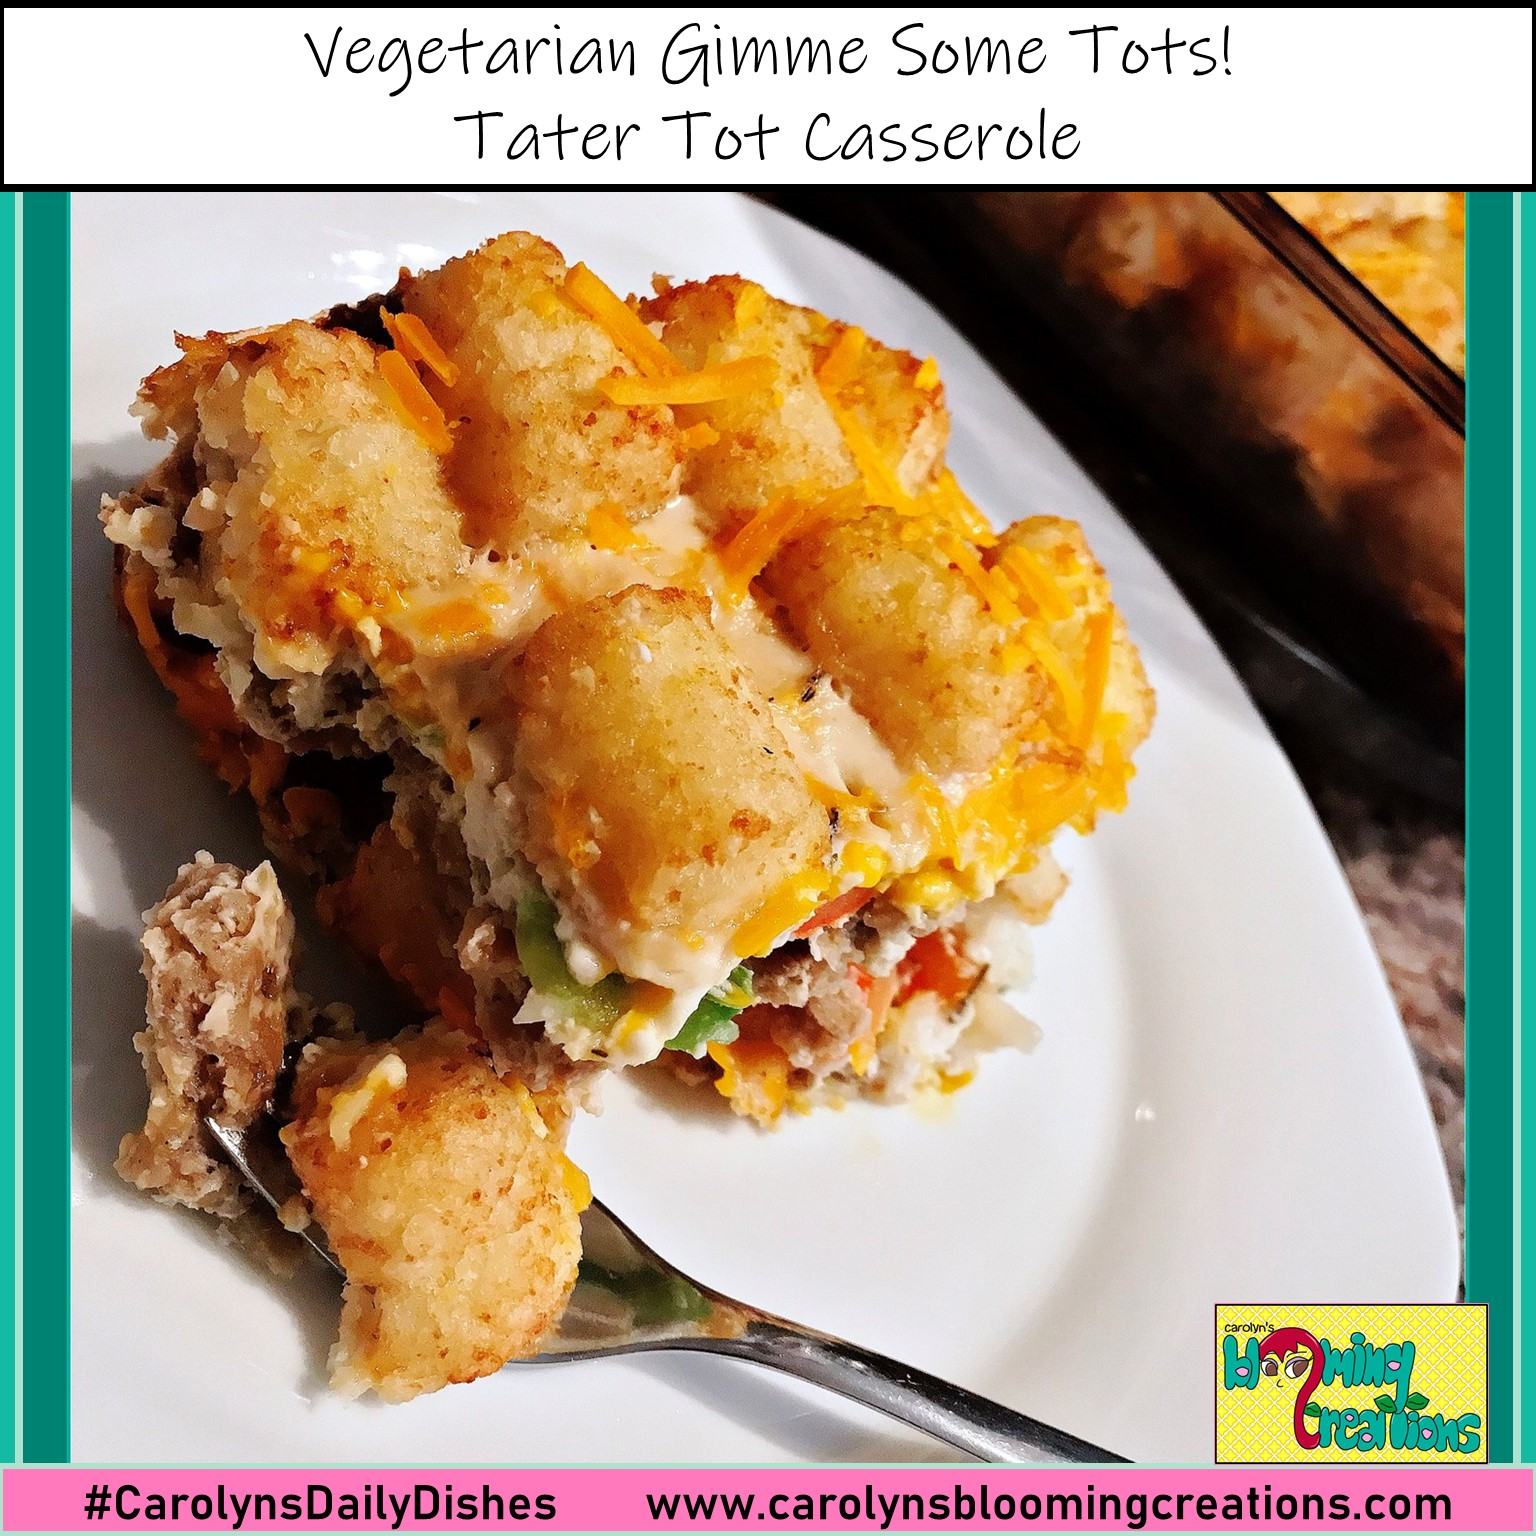 Pin me! Gimme Some Tots! Tater Tot Casserole via www.carolynsbloomingcreations.com #CarolynsDailyDishes